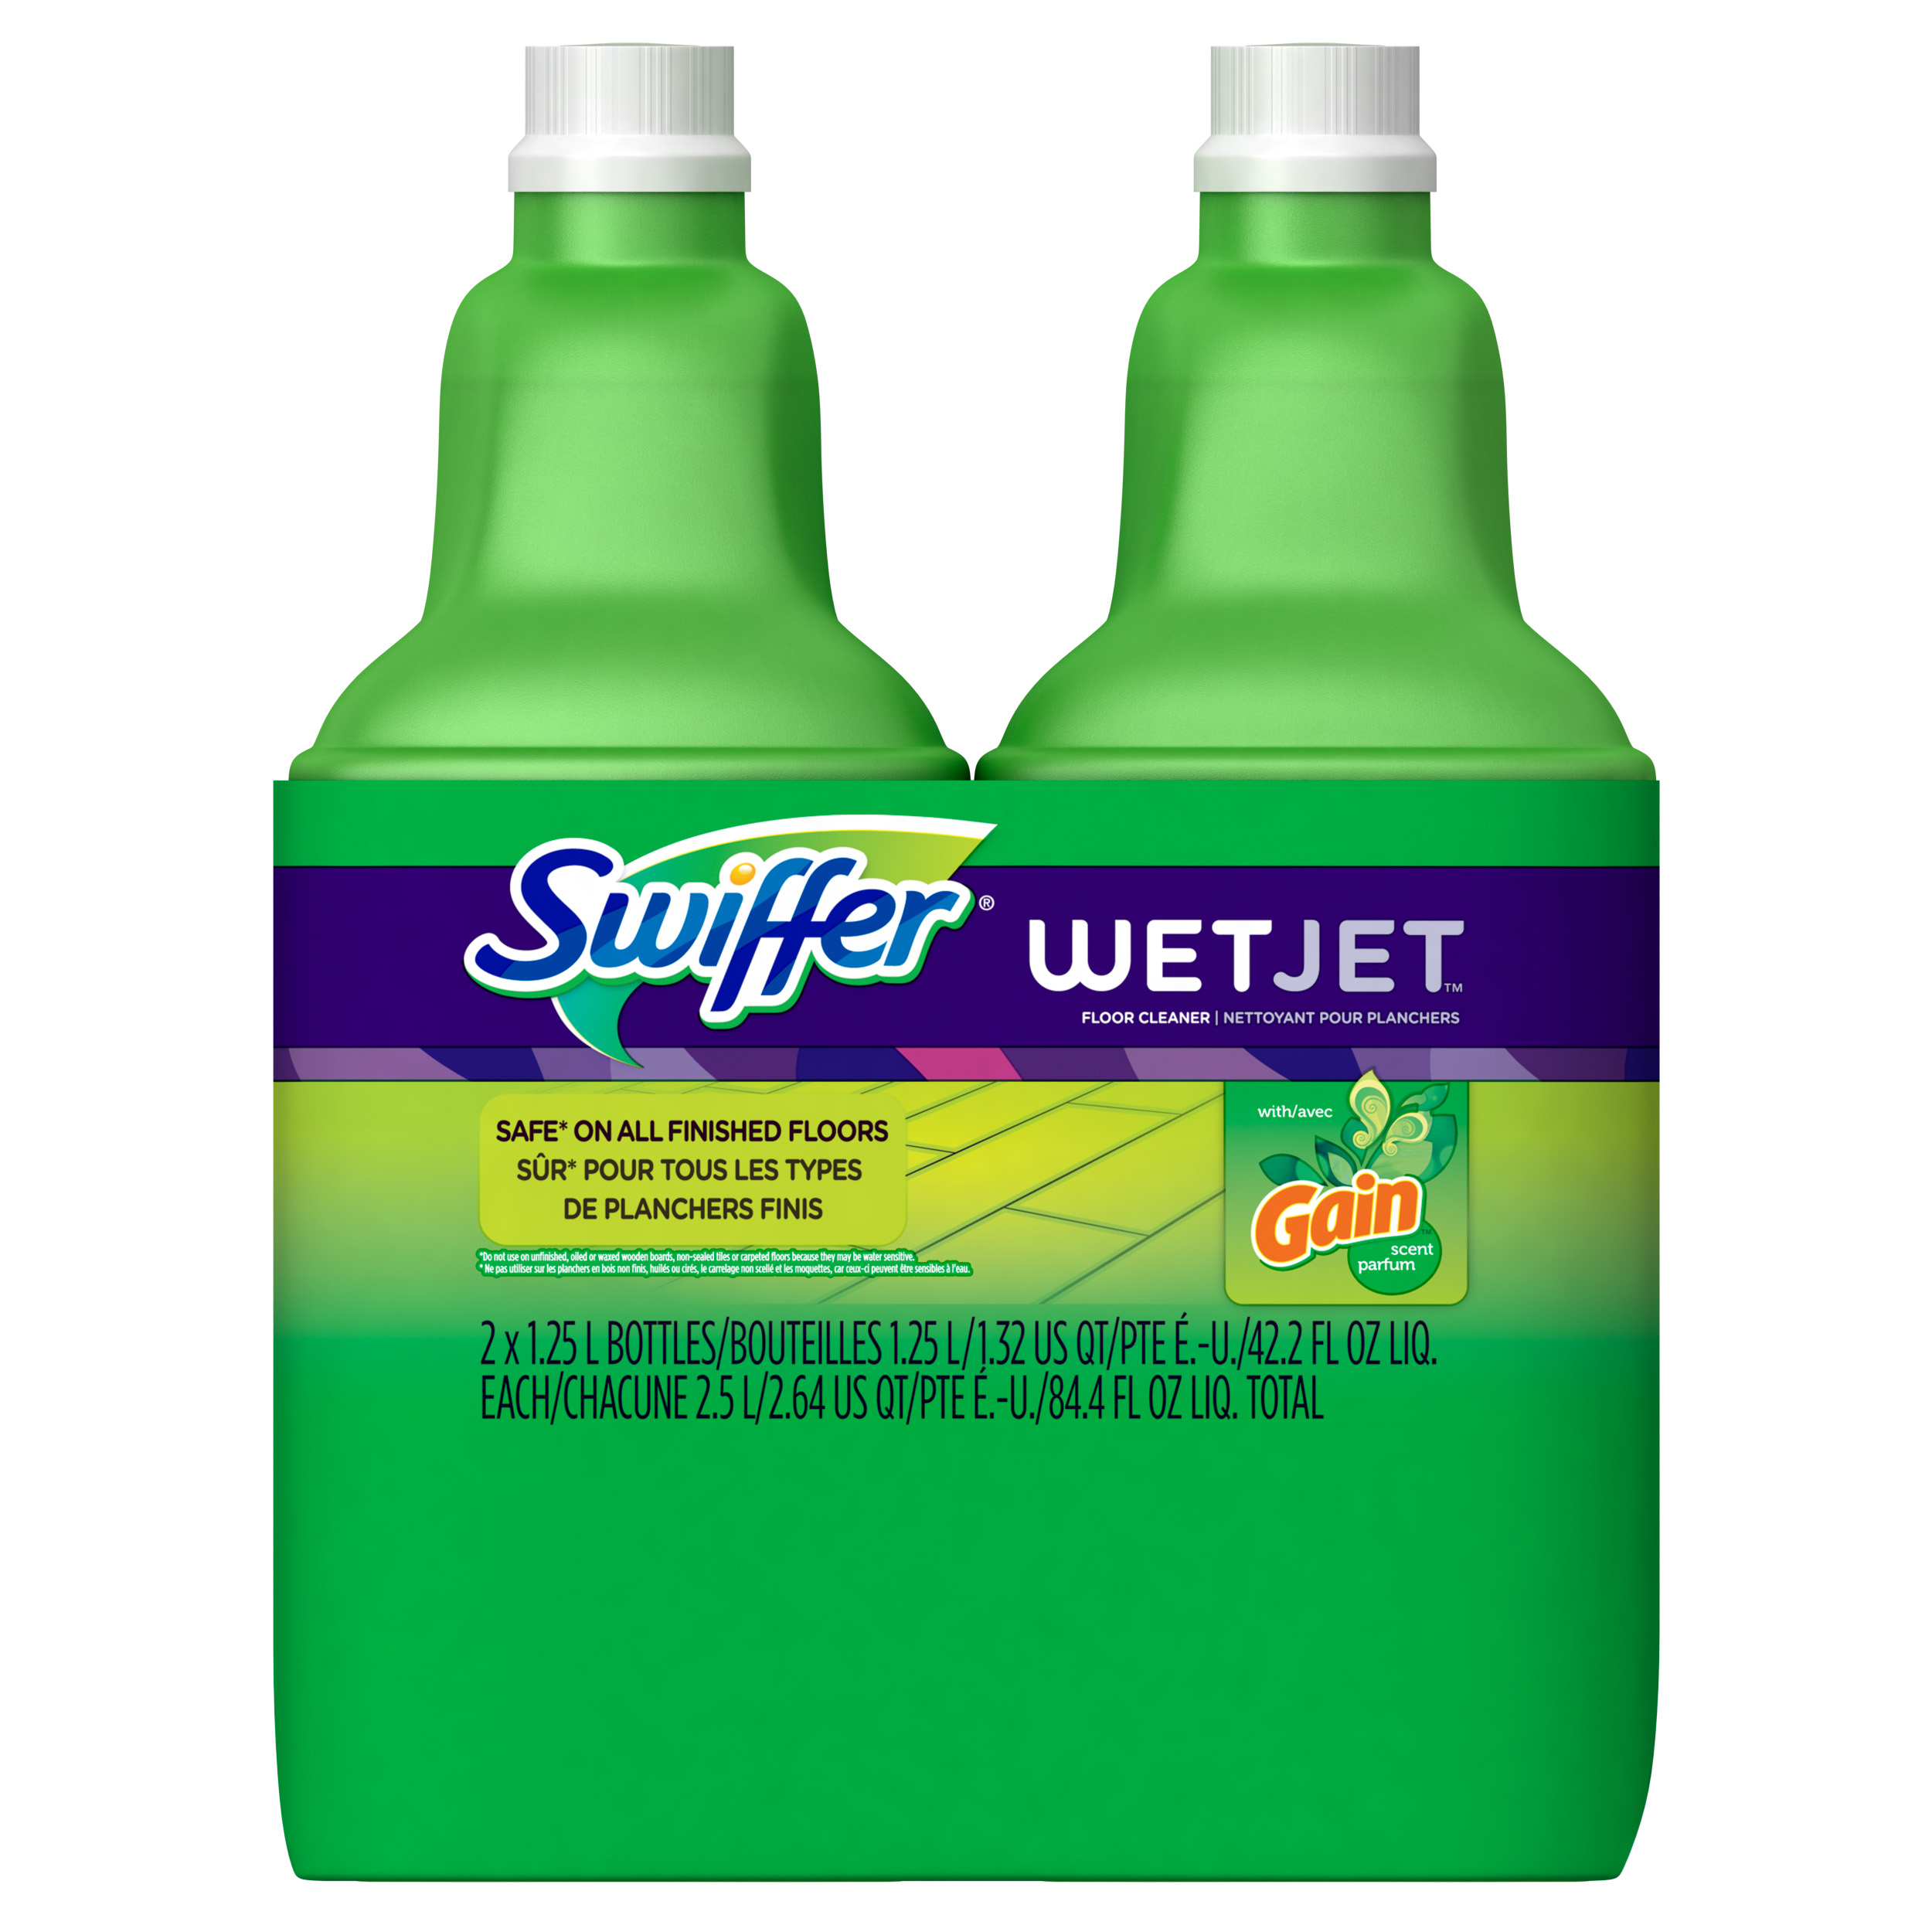 Swiffer WetJet Multi-purpose Floor Cleaner Solution Refill Gain Scent 2 Pack of 1.25L